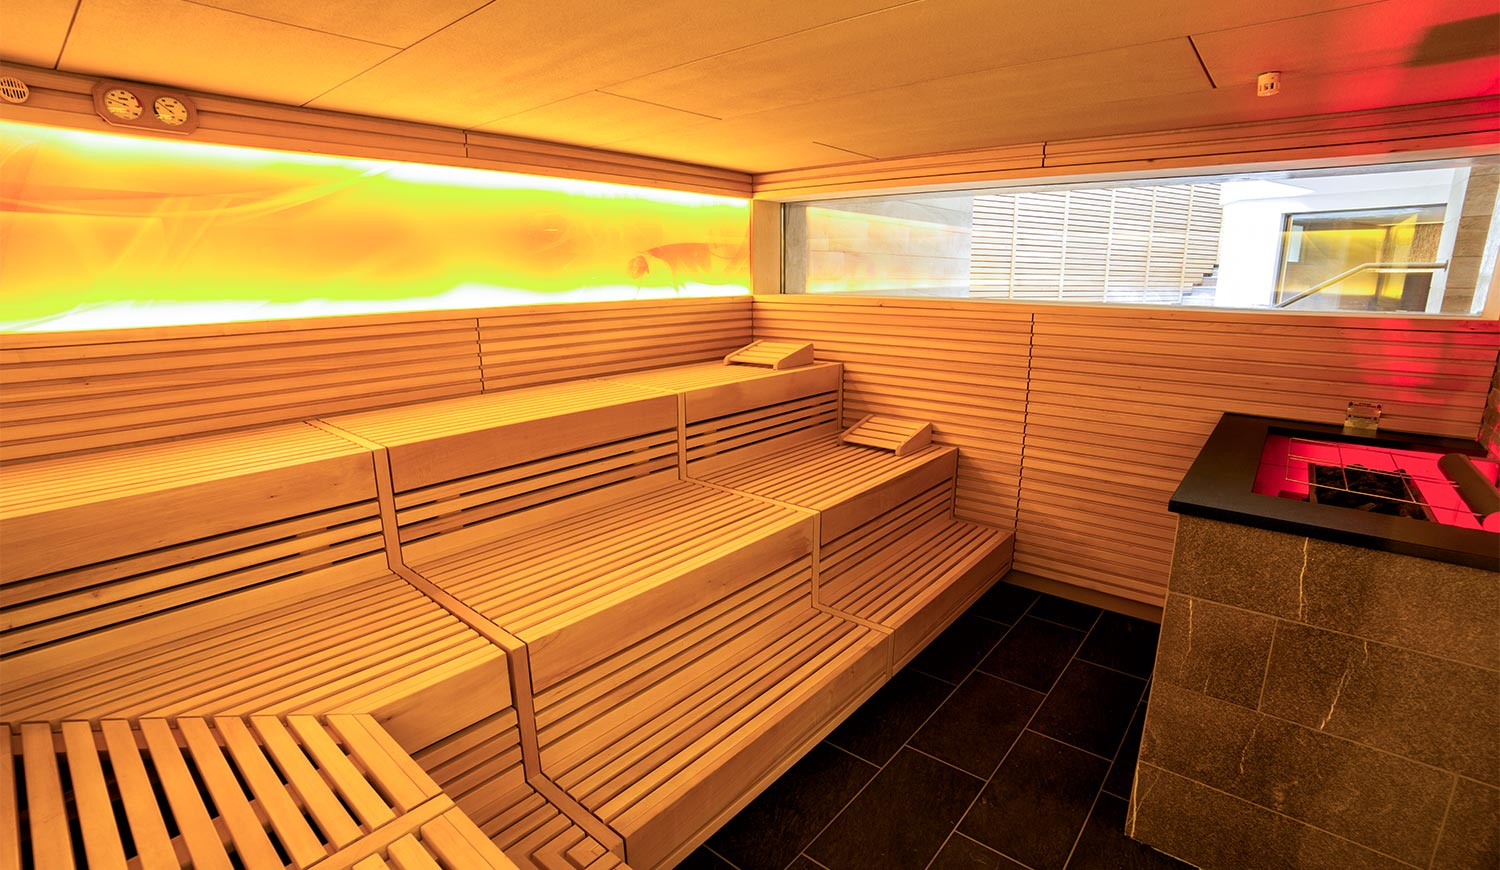 sauna in bozen s dtirol die spa des hotel ideal park. Black Bedroom Furniture Sets. Home Design Ideas